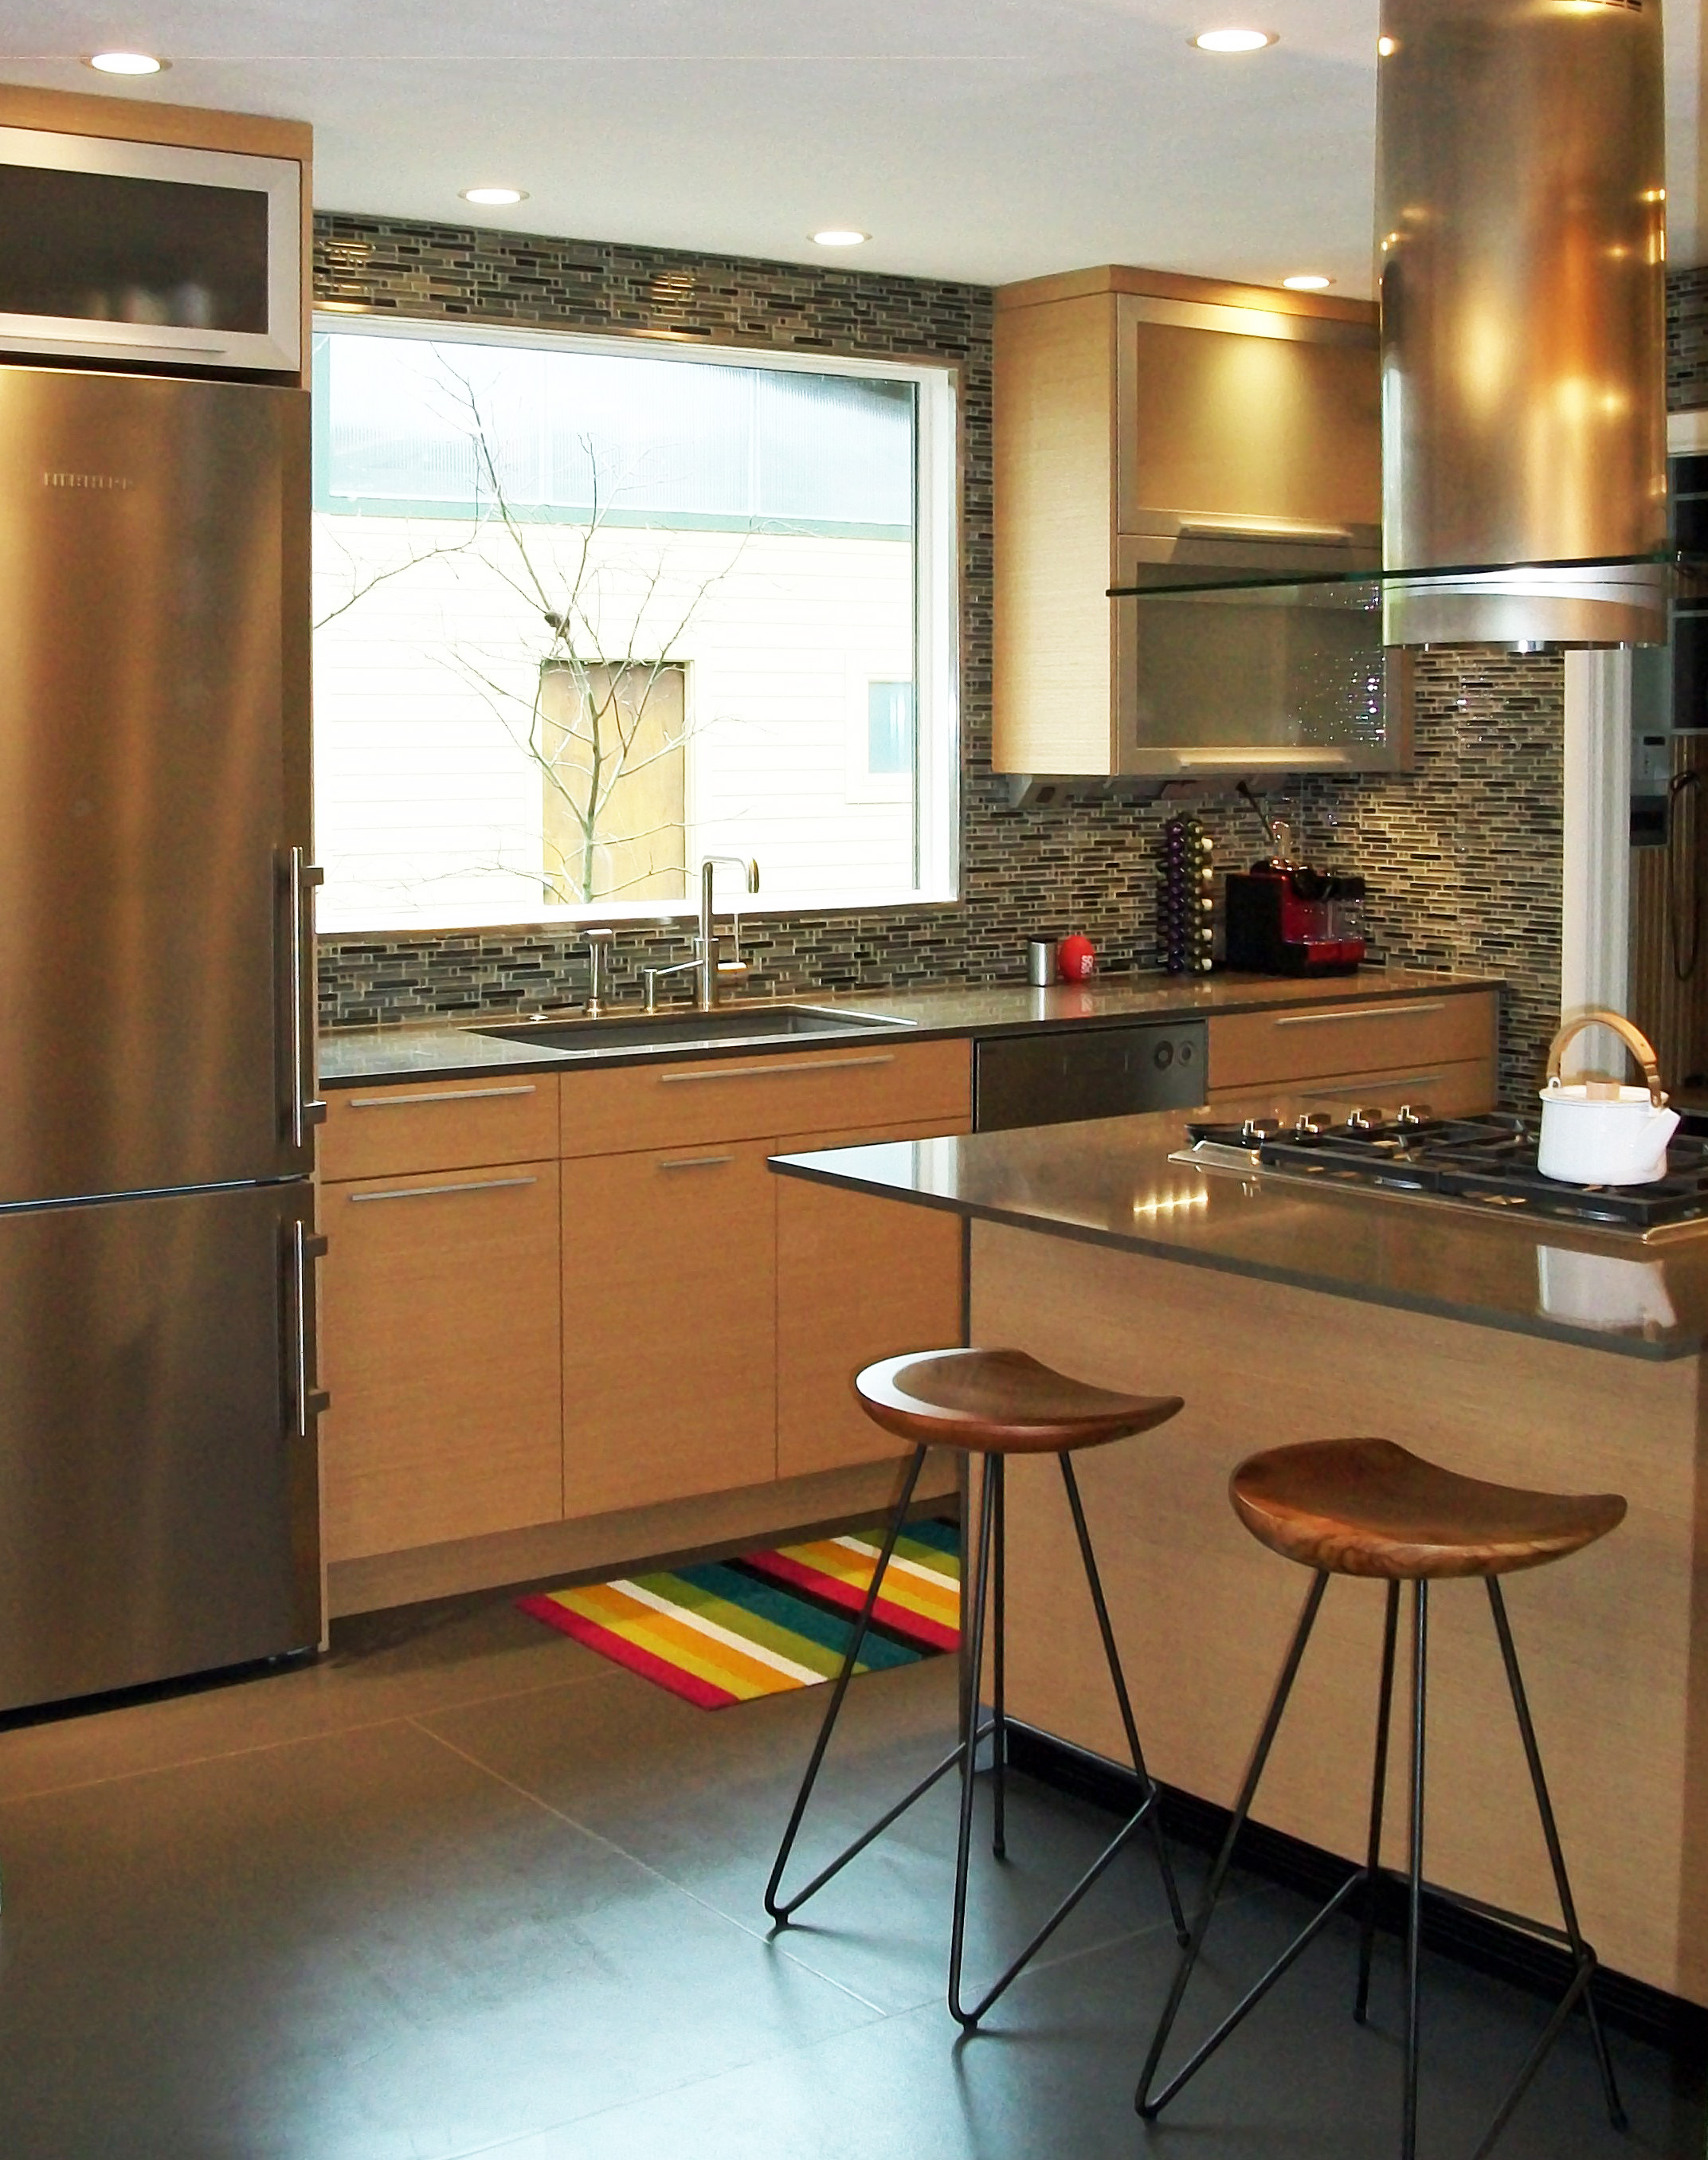 Eclectic custom kitchen by General Woodcraft Inc.